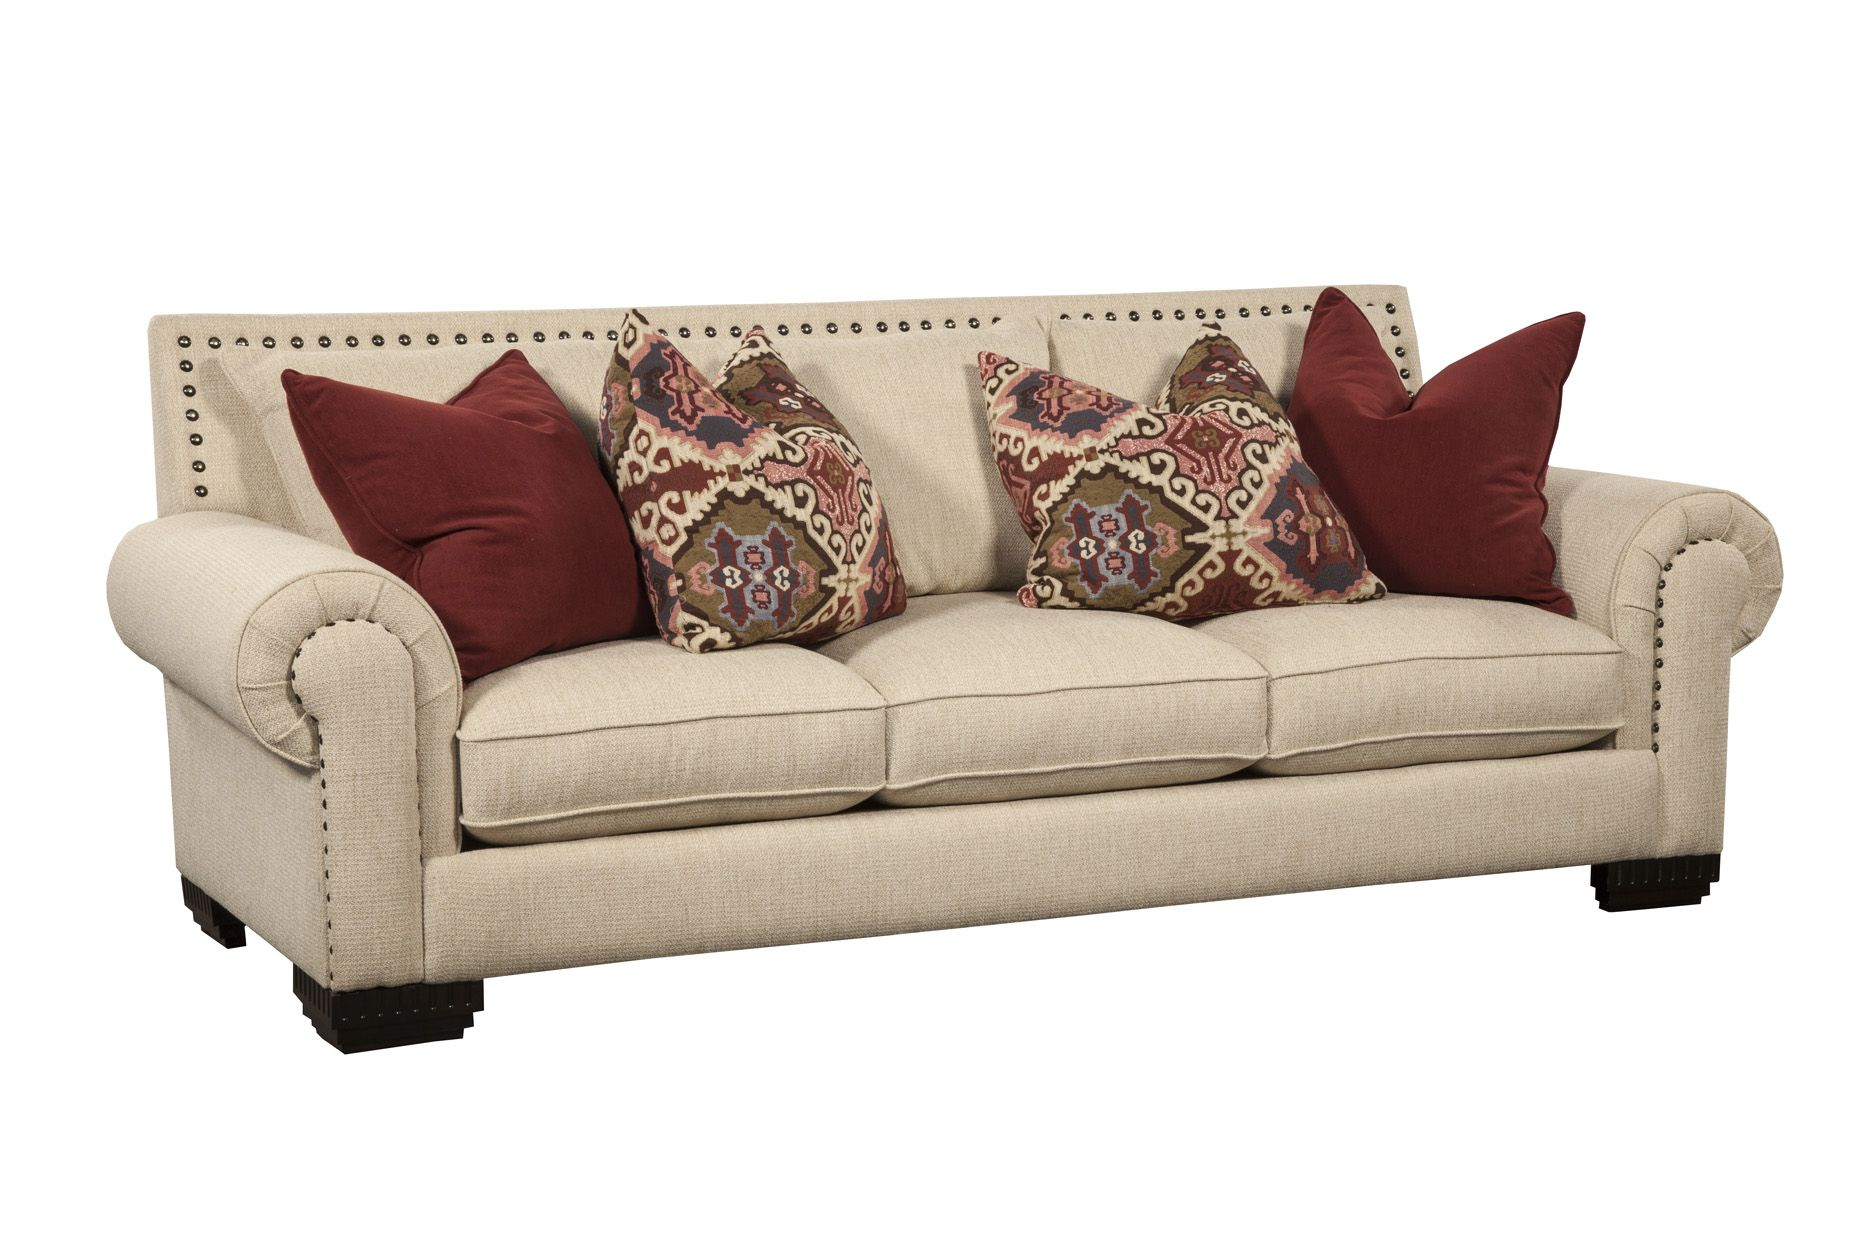 nice design michael moore goose oregon morfurniture portland michaels couch sectionals az robert mor cupboard se interior com spokane furniture down couches feather cushions by